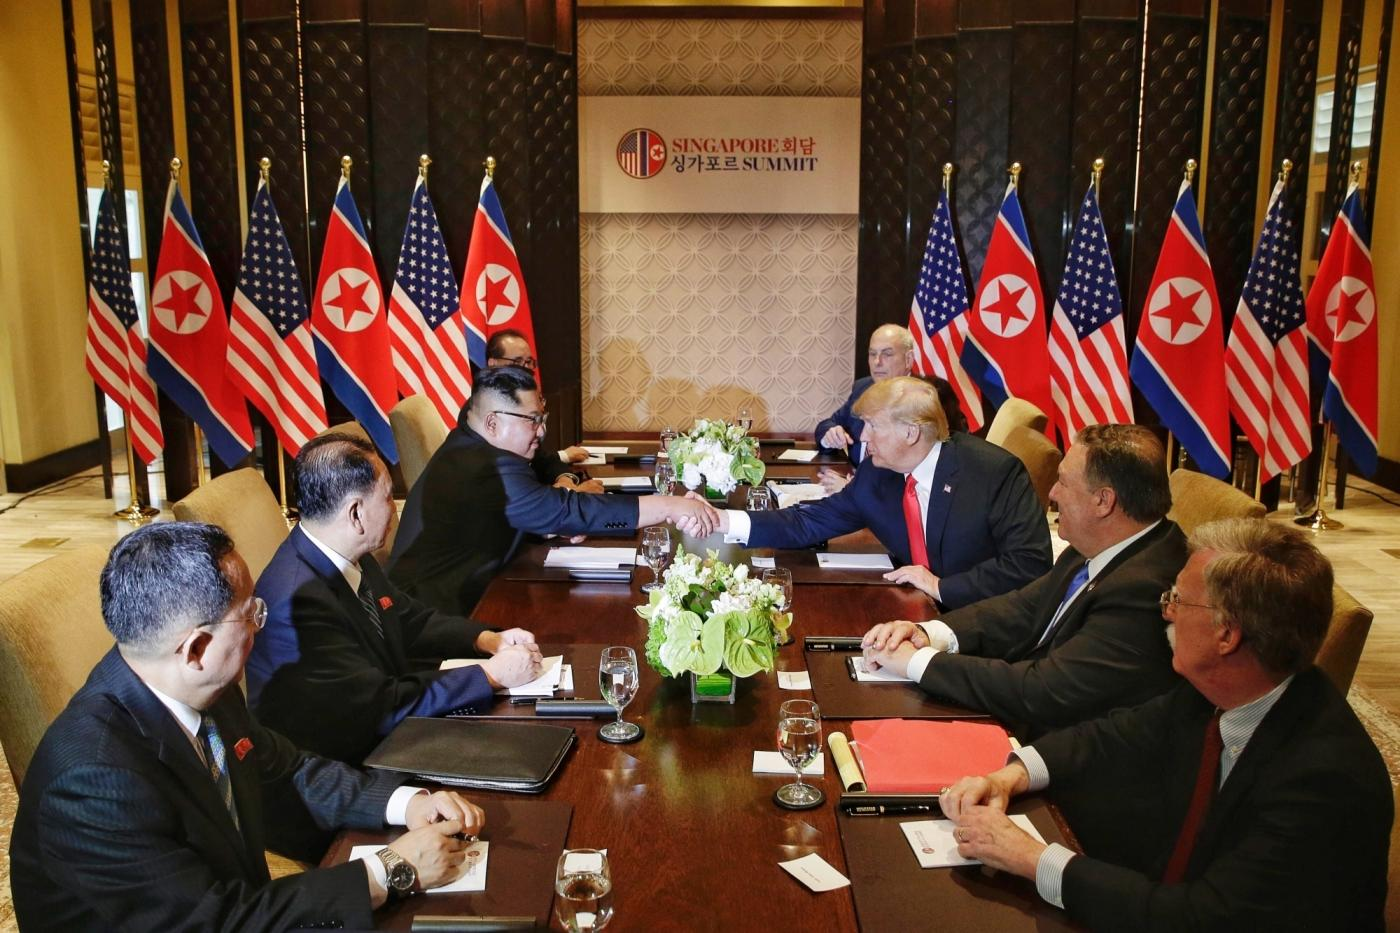 SINGAPORE, June 12, 2018 (Xinhua) -- Top leader of the Democratic People's Republic of Korea (DPRK) Kim Jong Un (3rd L) holds talks with U.S. President Donald Trump (3rd R) in Singapore, on June 12, 2018. (Xinhua/Ministry of Communication and Information of Singapore/IANS) by .